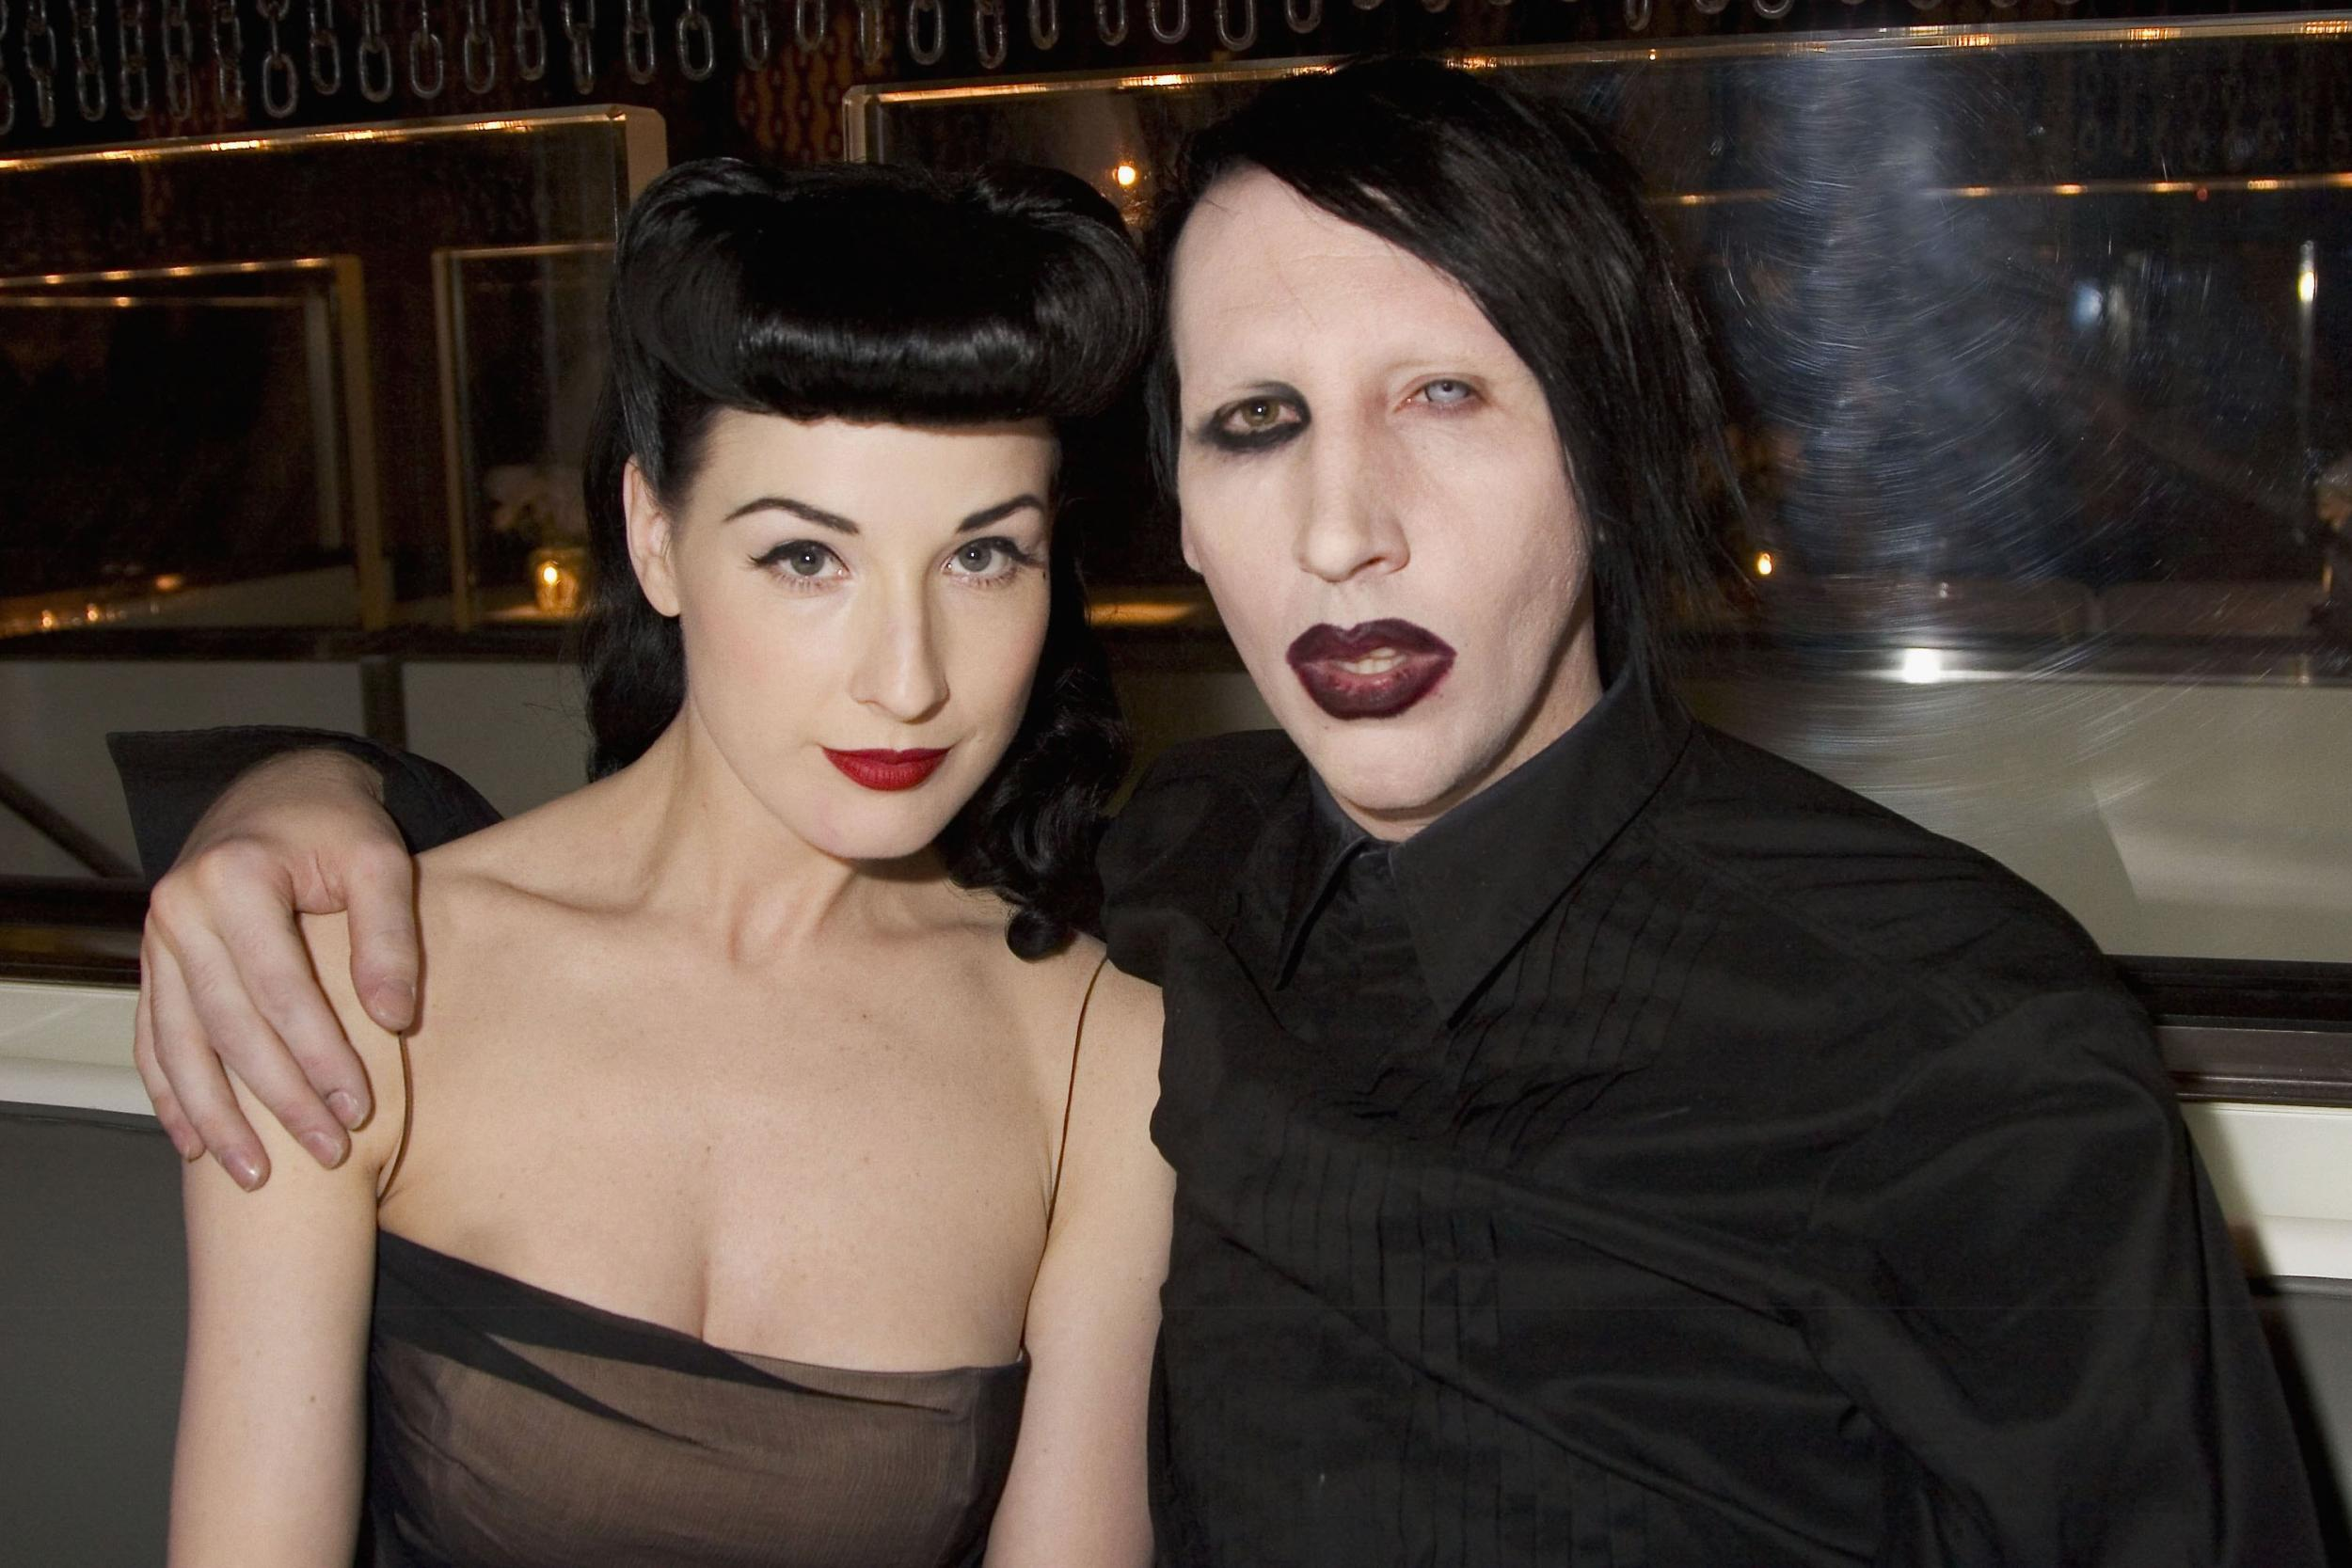 Dita Von Teese, Marilyn Manson's Ex, Just Dropped a Sexy